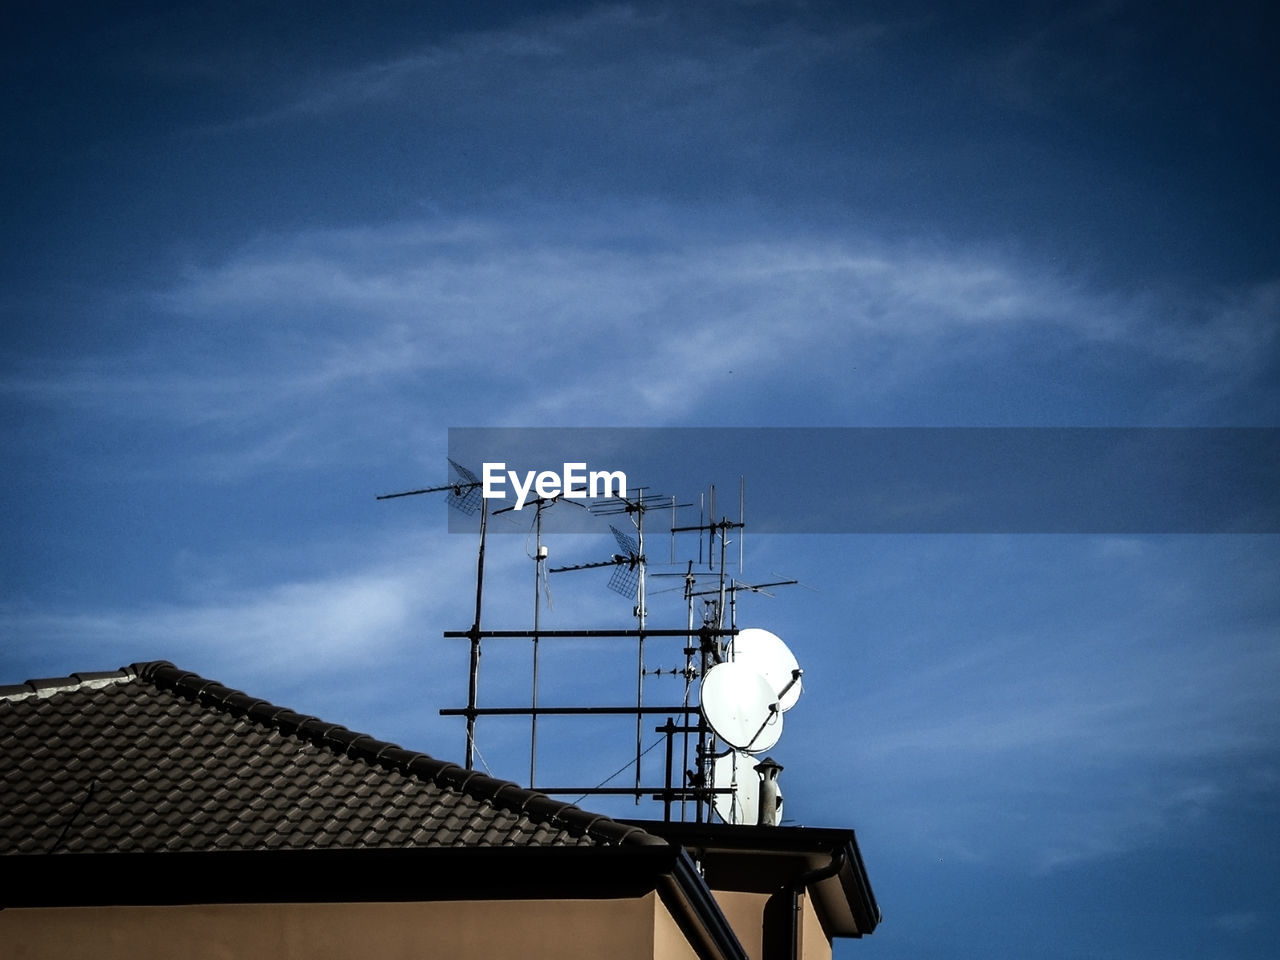 communication, technology, telecommunications equipment, antenna - aerial, architecture, built structure, connection, building exterior, roof, low angle view, television aerial, satellite dish, wireless technology, sky, day, outdoors, cloud - sky, global communications, no people, blue, tiled roof